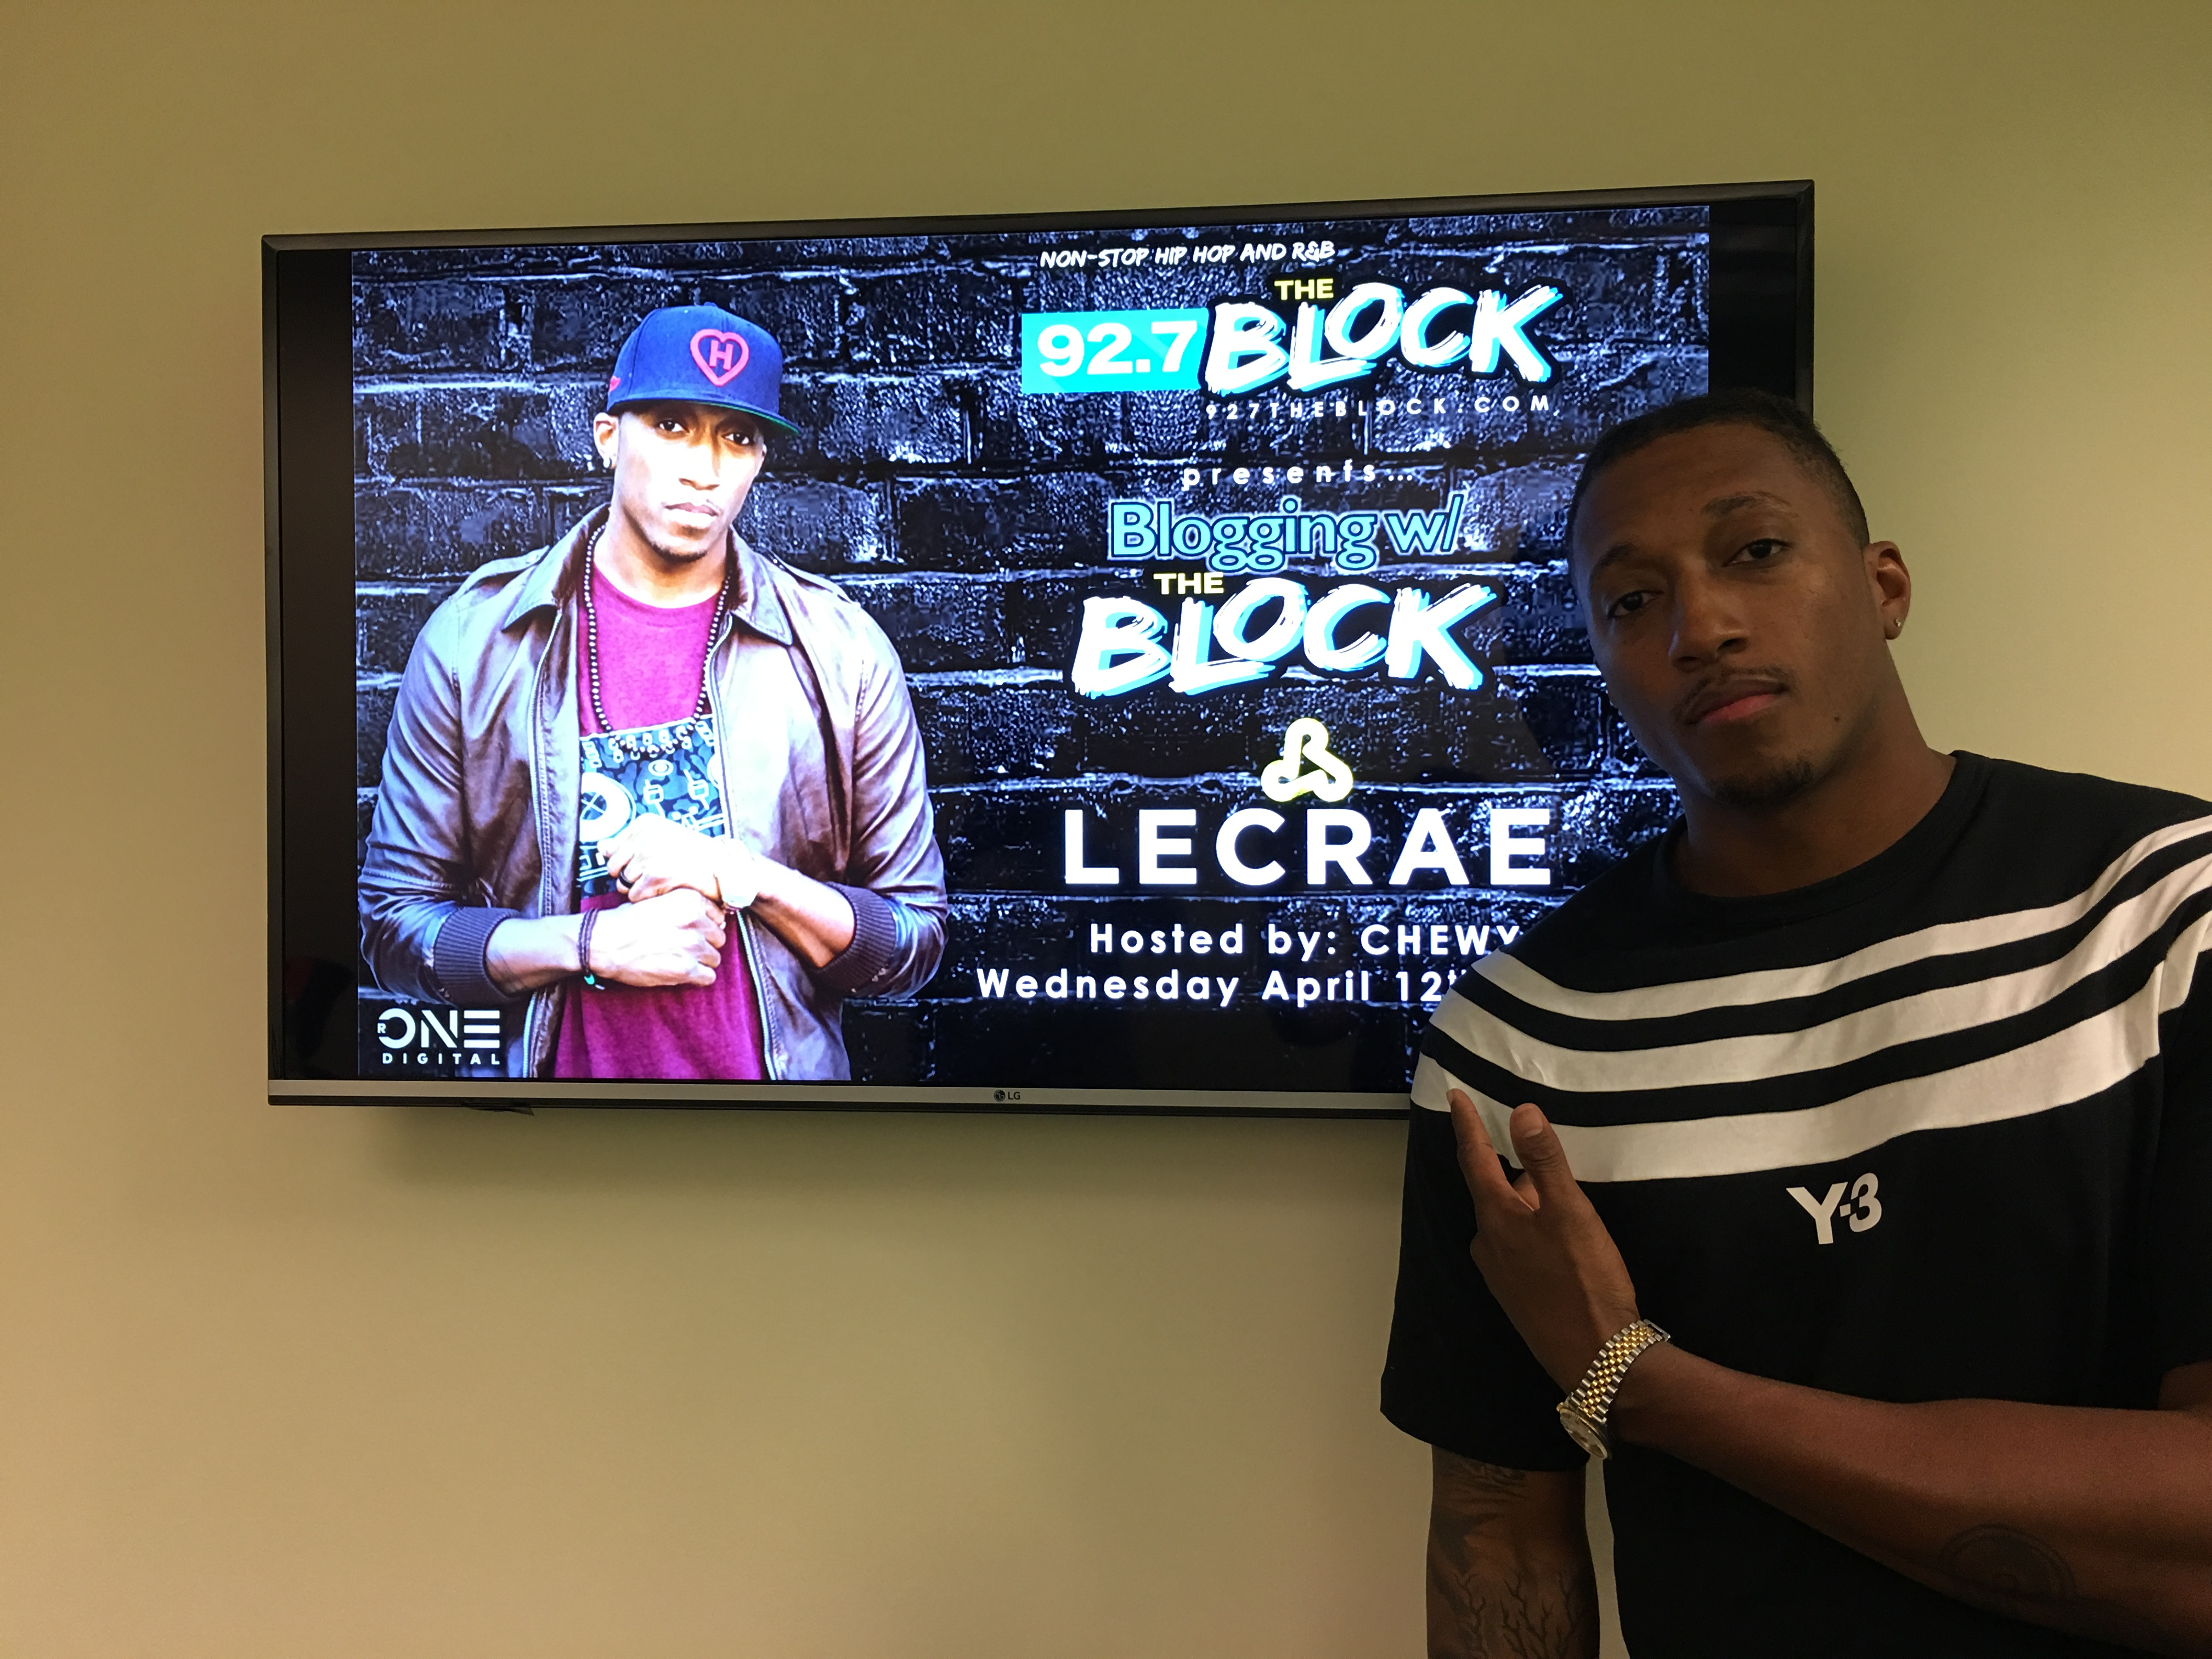 Blogging On The Block With Lecrae